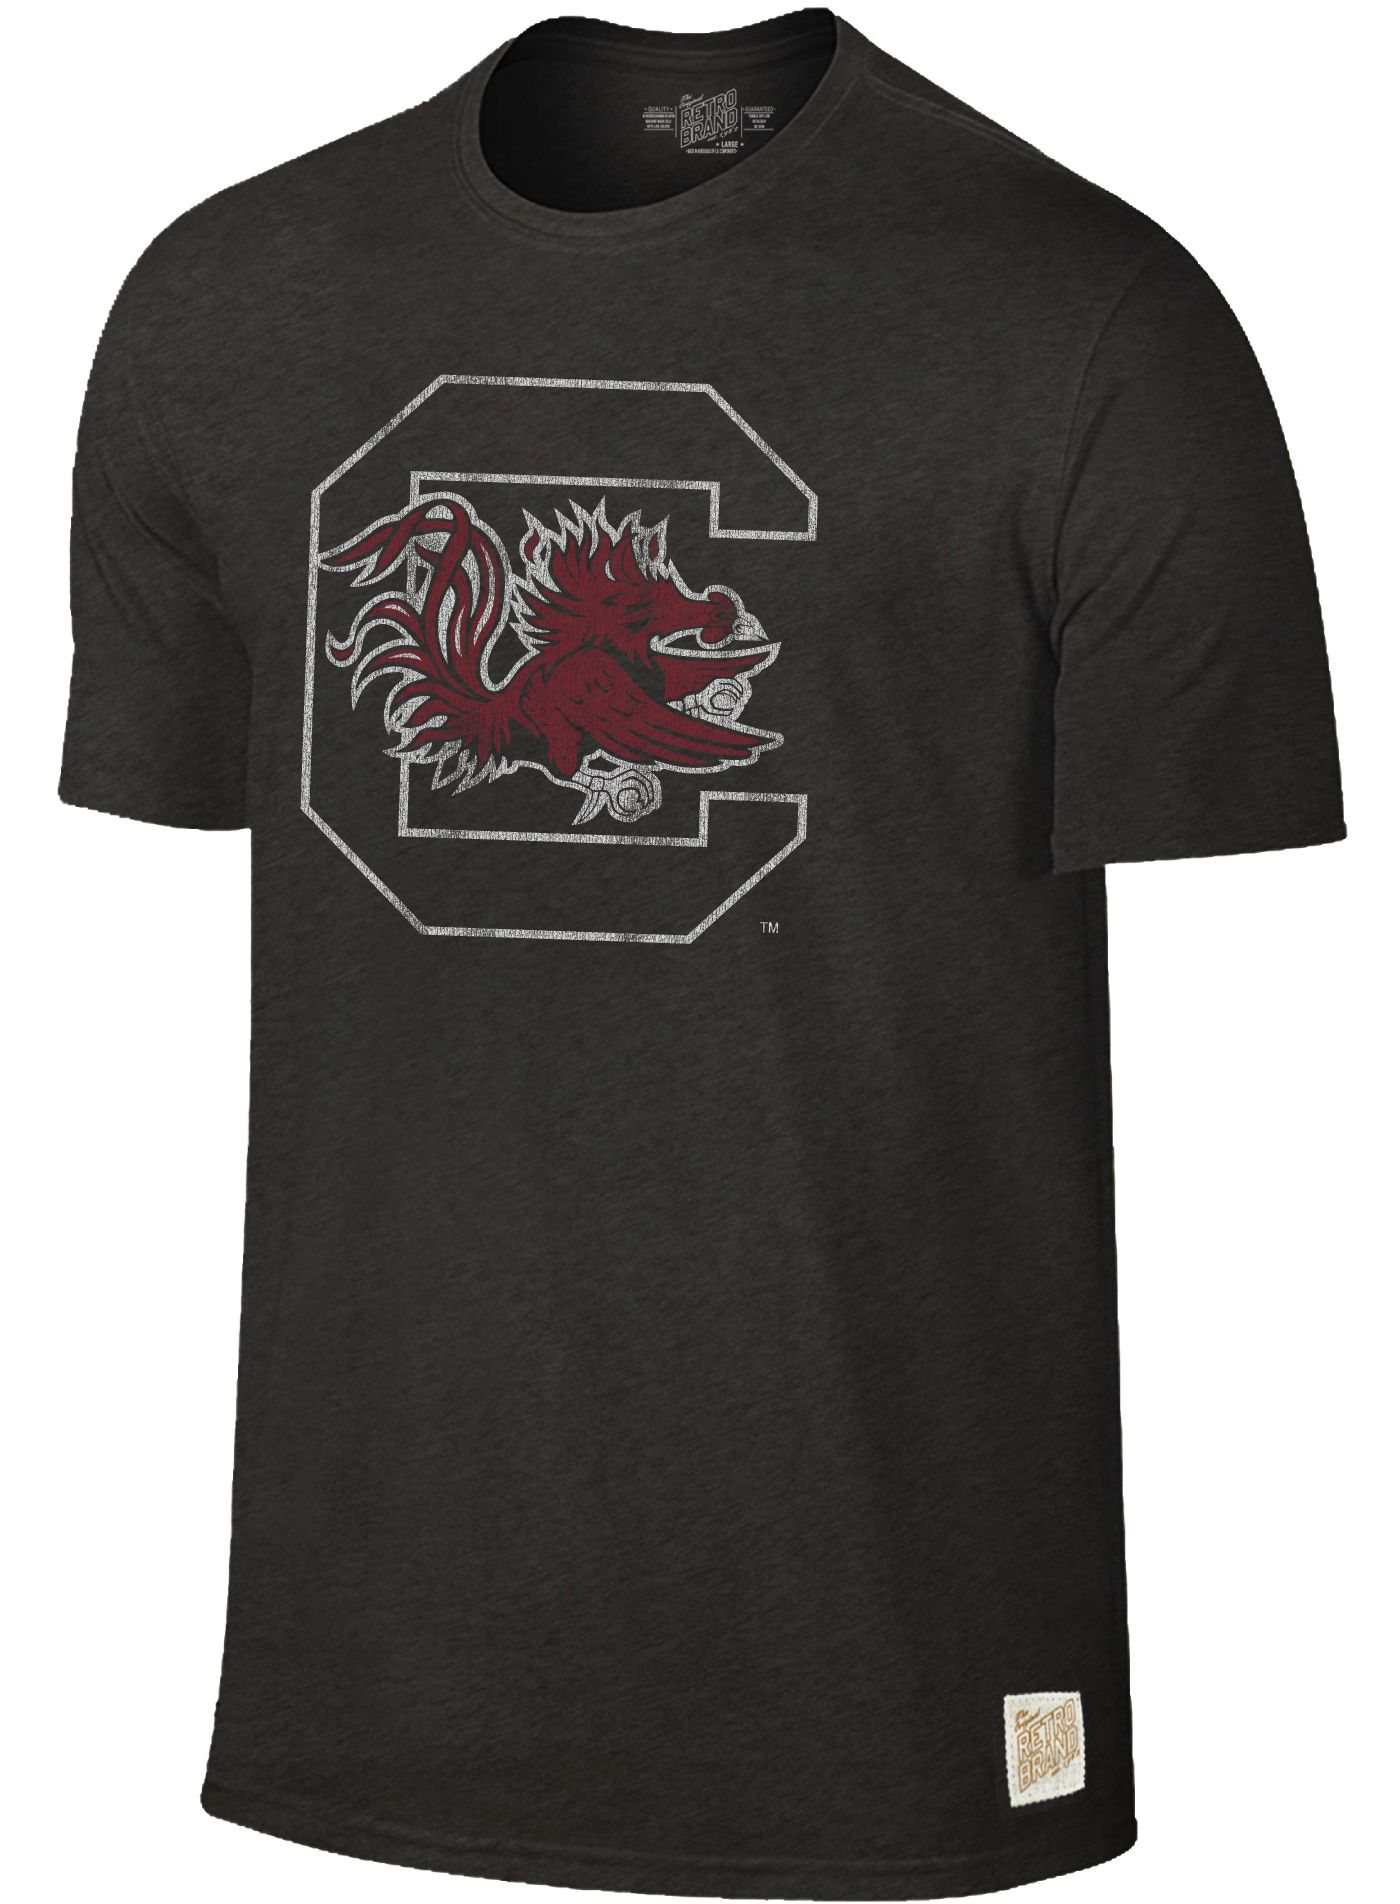 Original Retro Brand Men's South Carolina Gamecocks Dual Blend Black T-Shirt